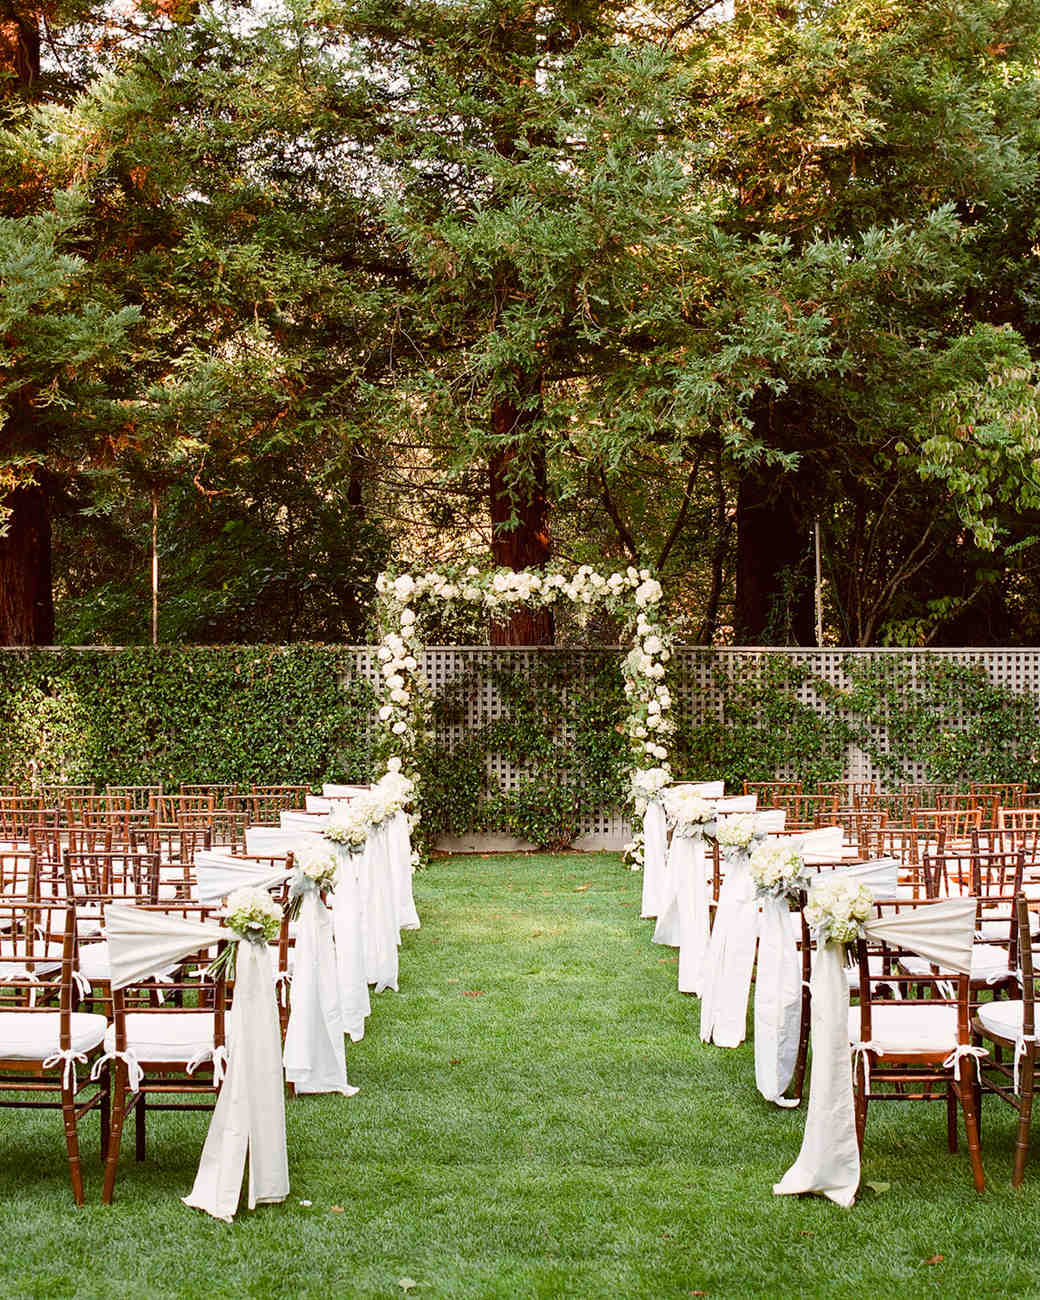 A Formal Outdoor Destination Wedding In Napa, California